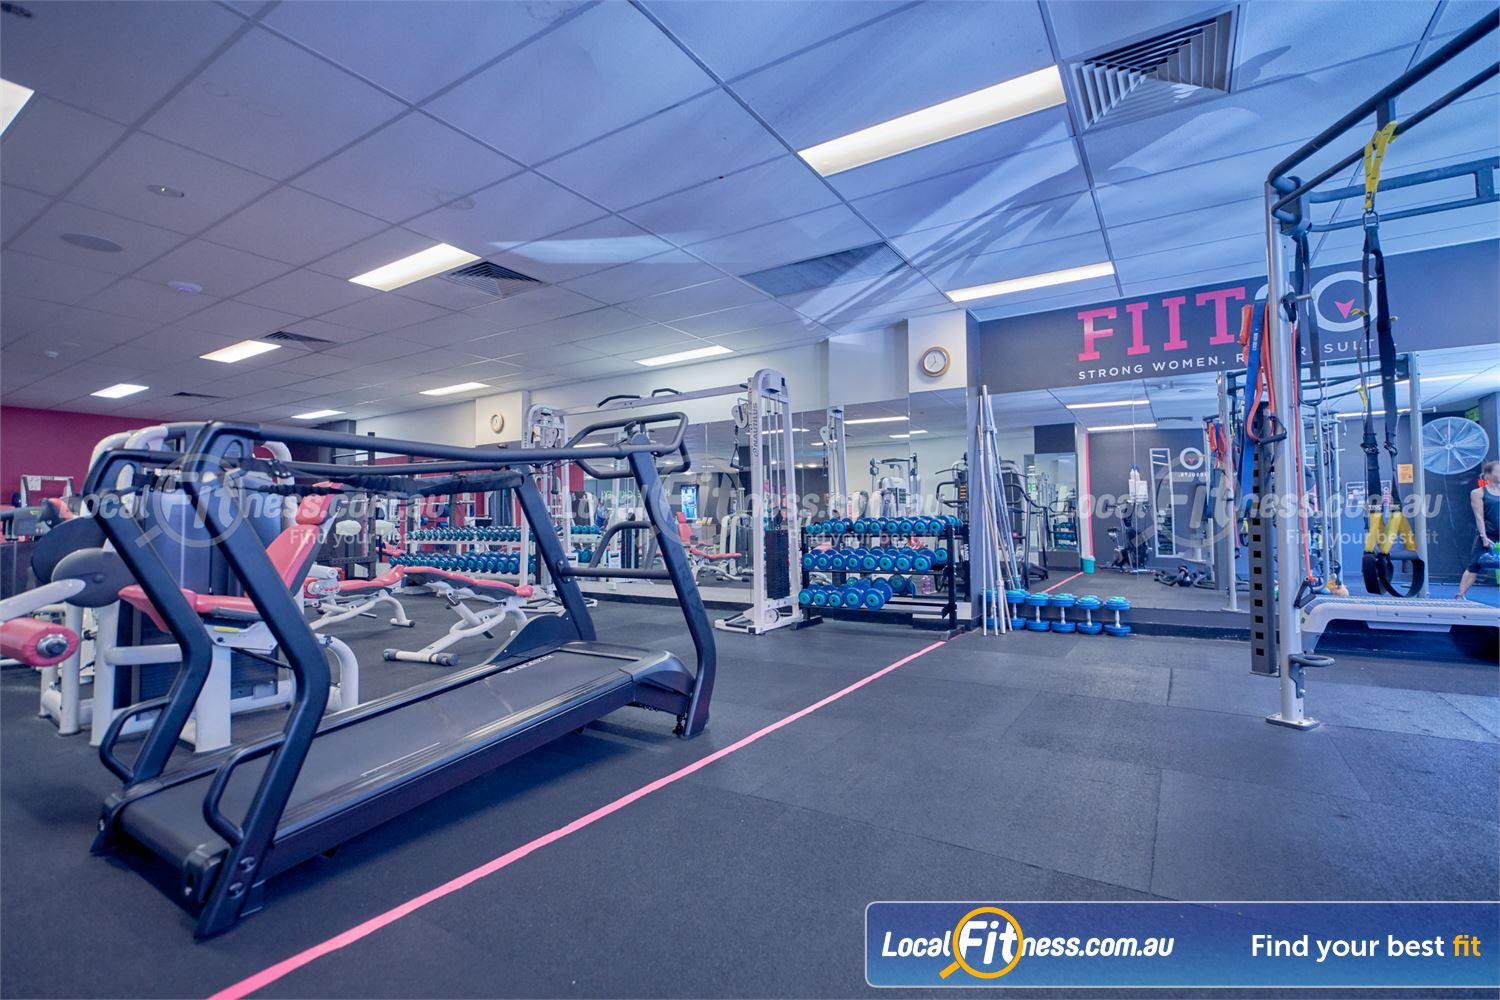 Fernwood Fitness St Kilda Welcome to Fernwood Fitness St Kilda women's gym.